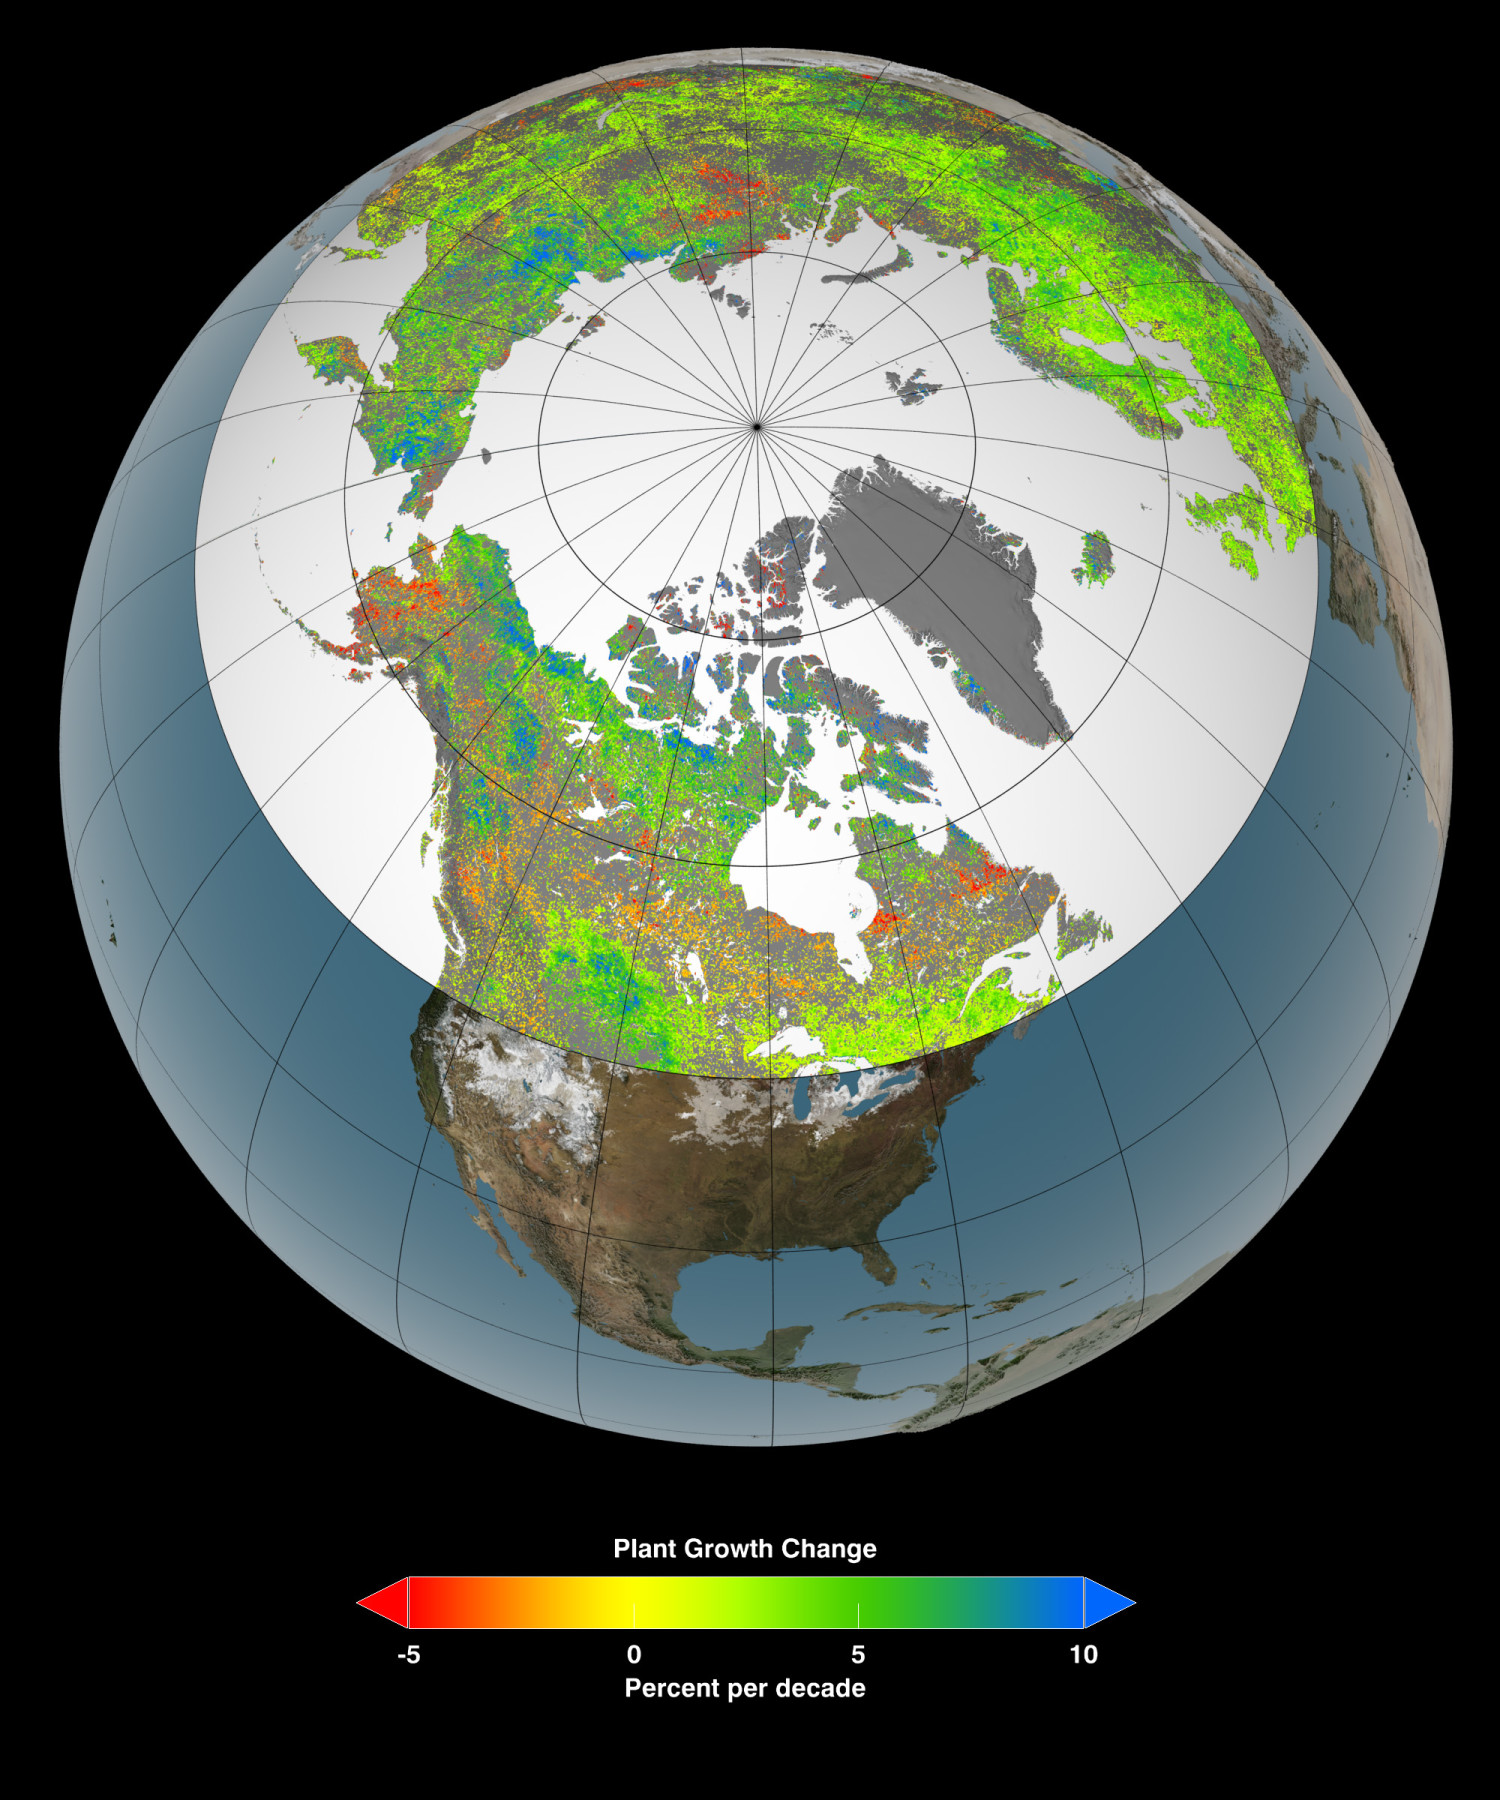 A 30-year record of land surface and satellite data sets suggests that vegetation growth at Earth's northern latitudes increasingly resembles more lush latitudes to the south. View larger.